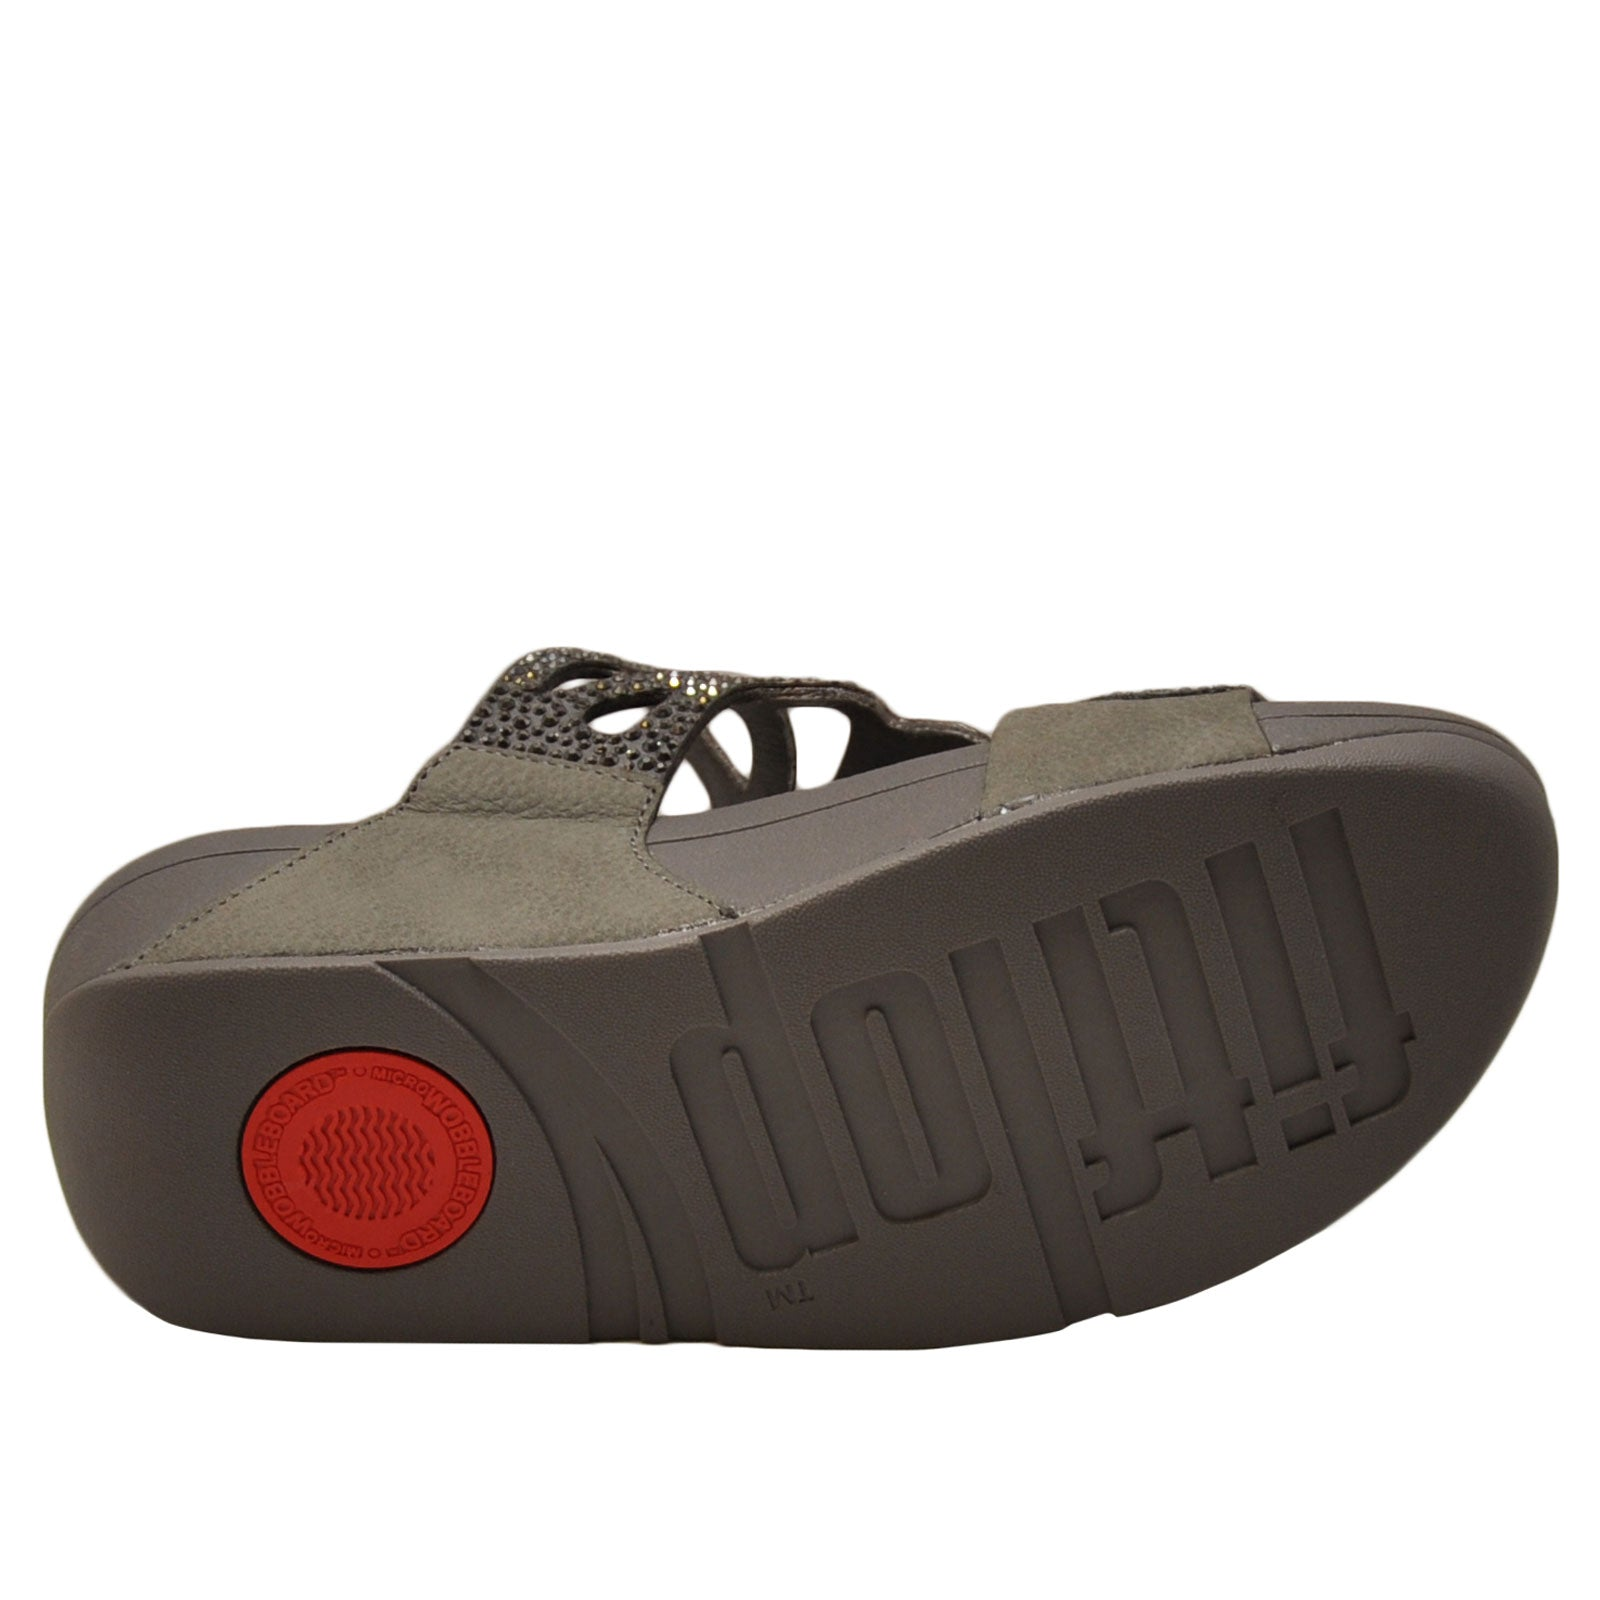 ef255c0d75be Fitflop Bumble Crystal Slide-Pewter. NEXT. PREV. Zoom+